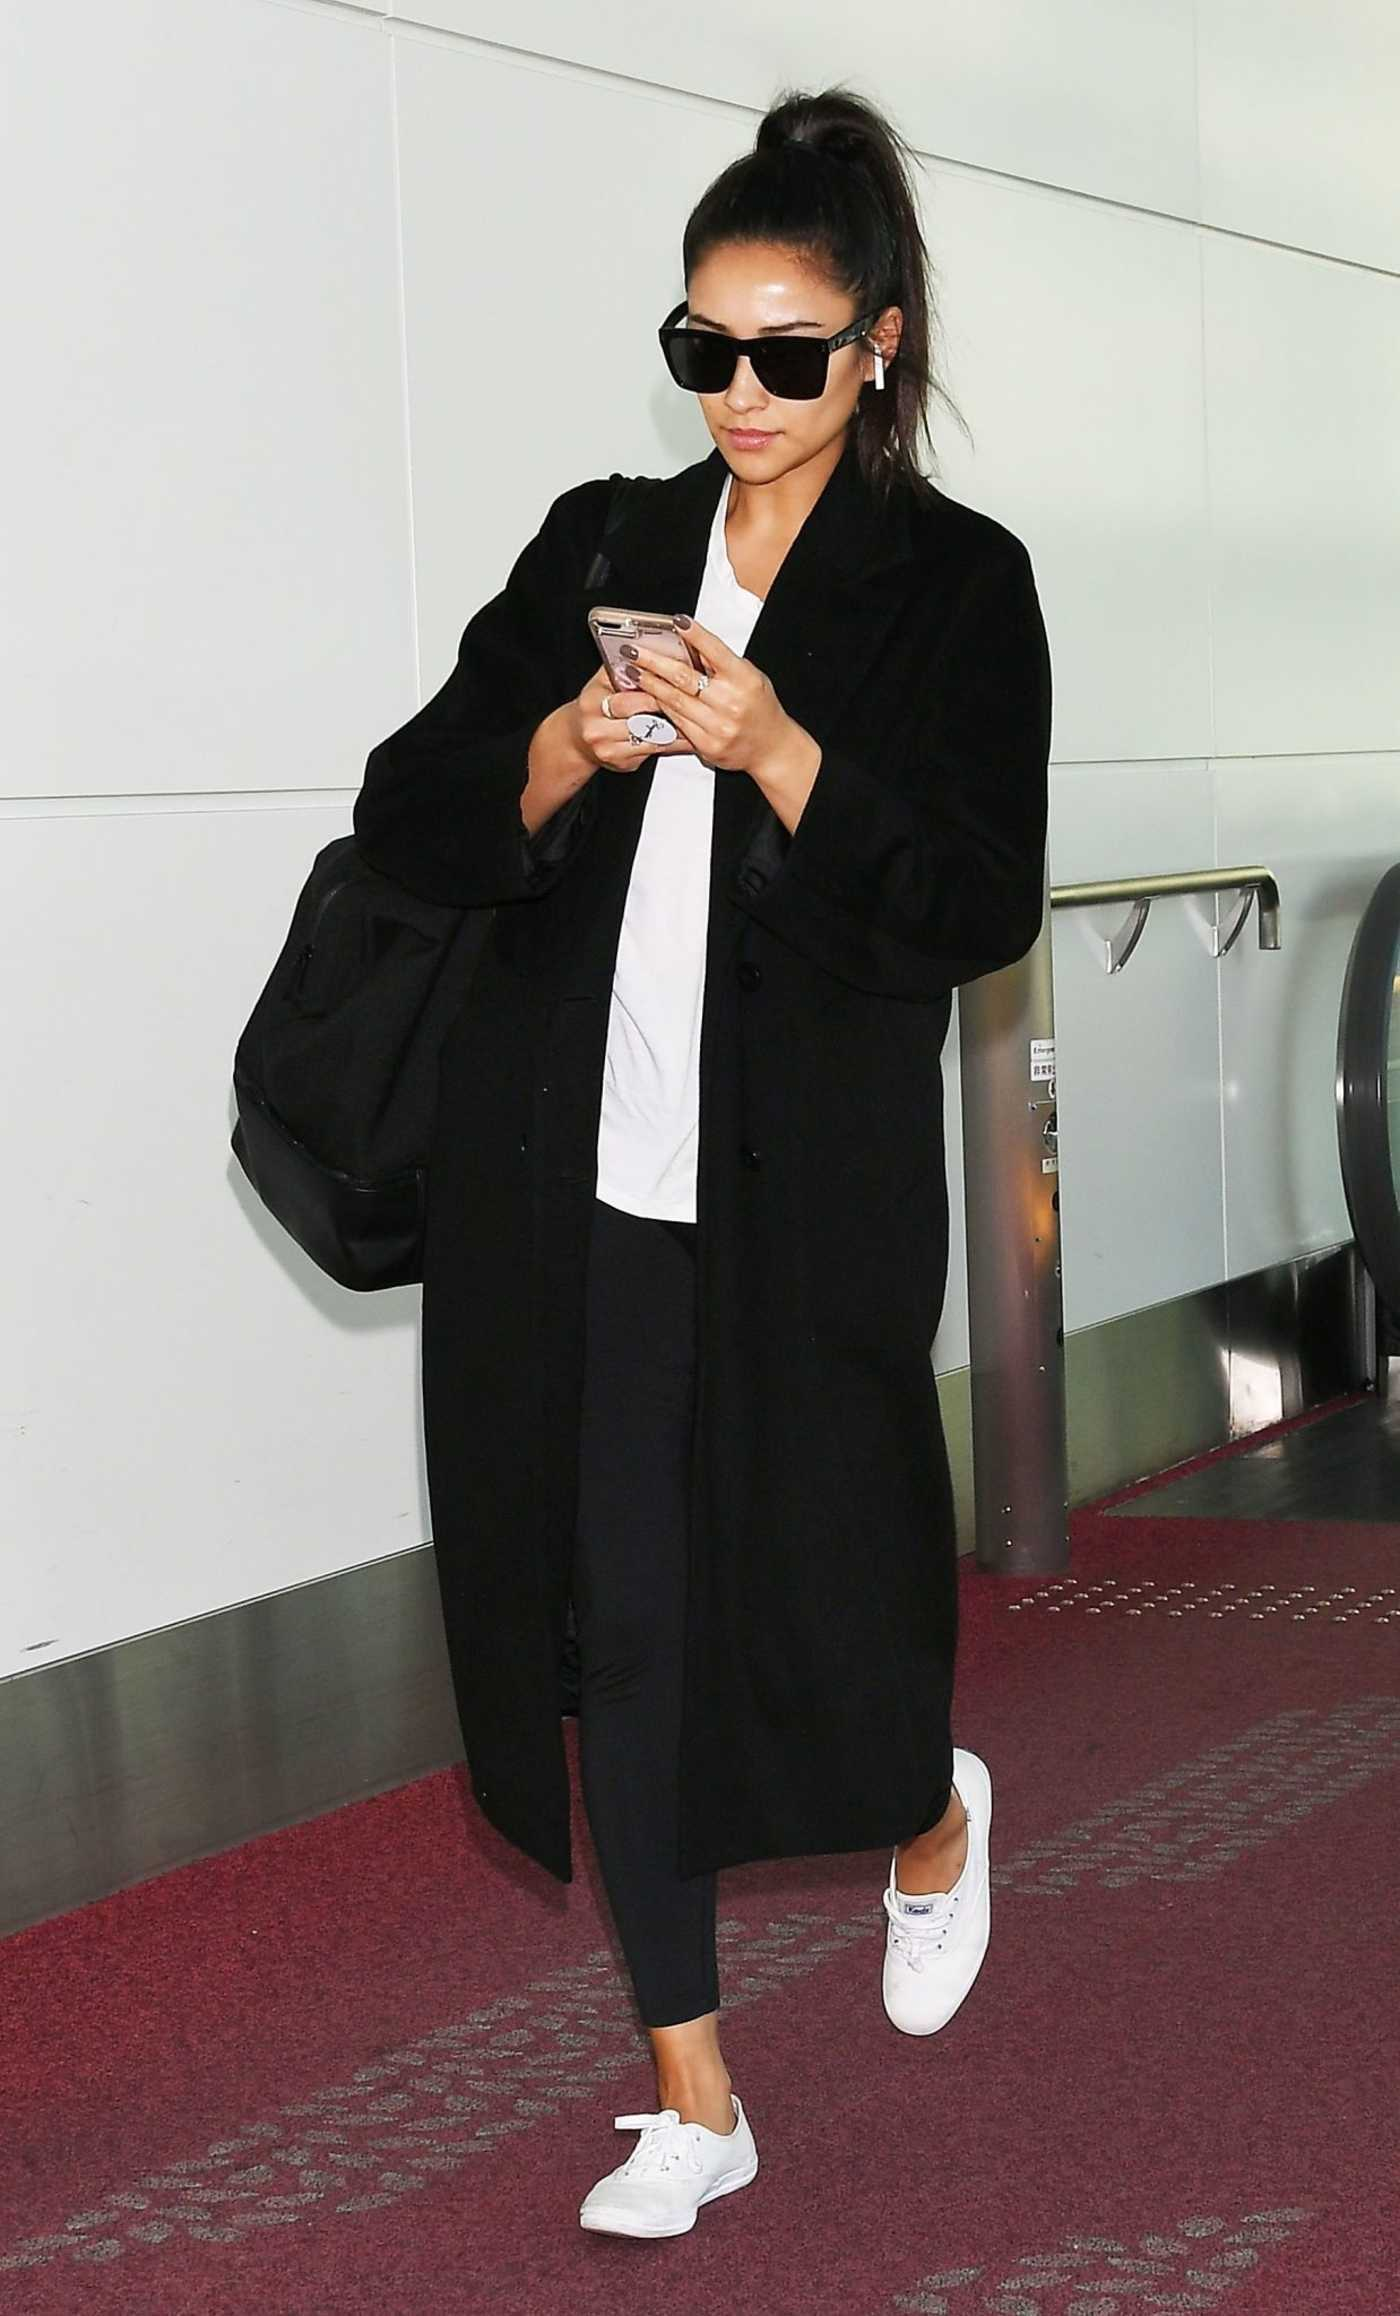 Shay Mitchell in a Black Coat Arrives at Haneda Airport in Tokyo 10/29/2018